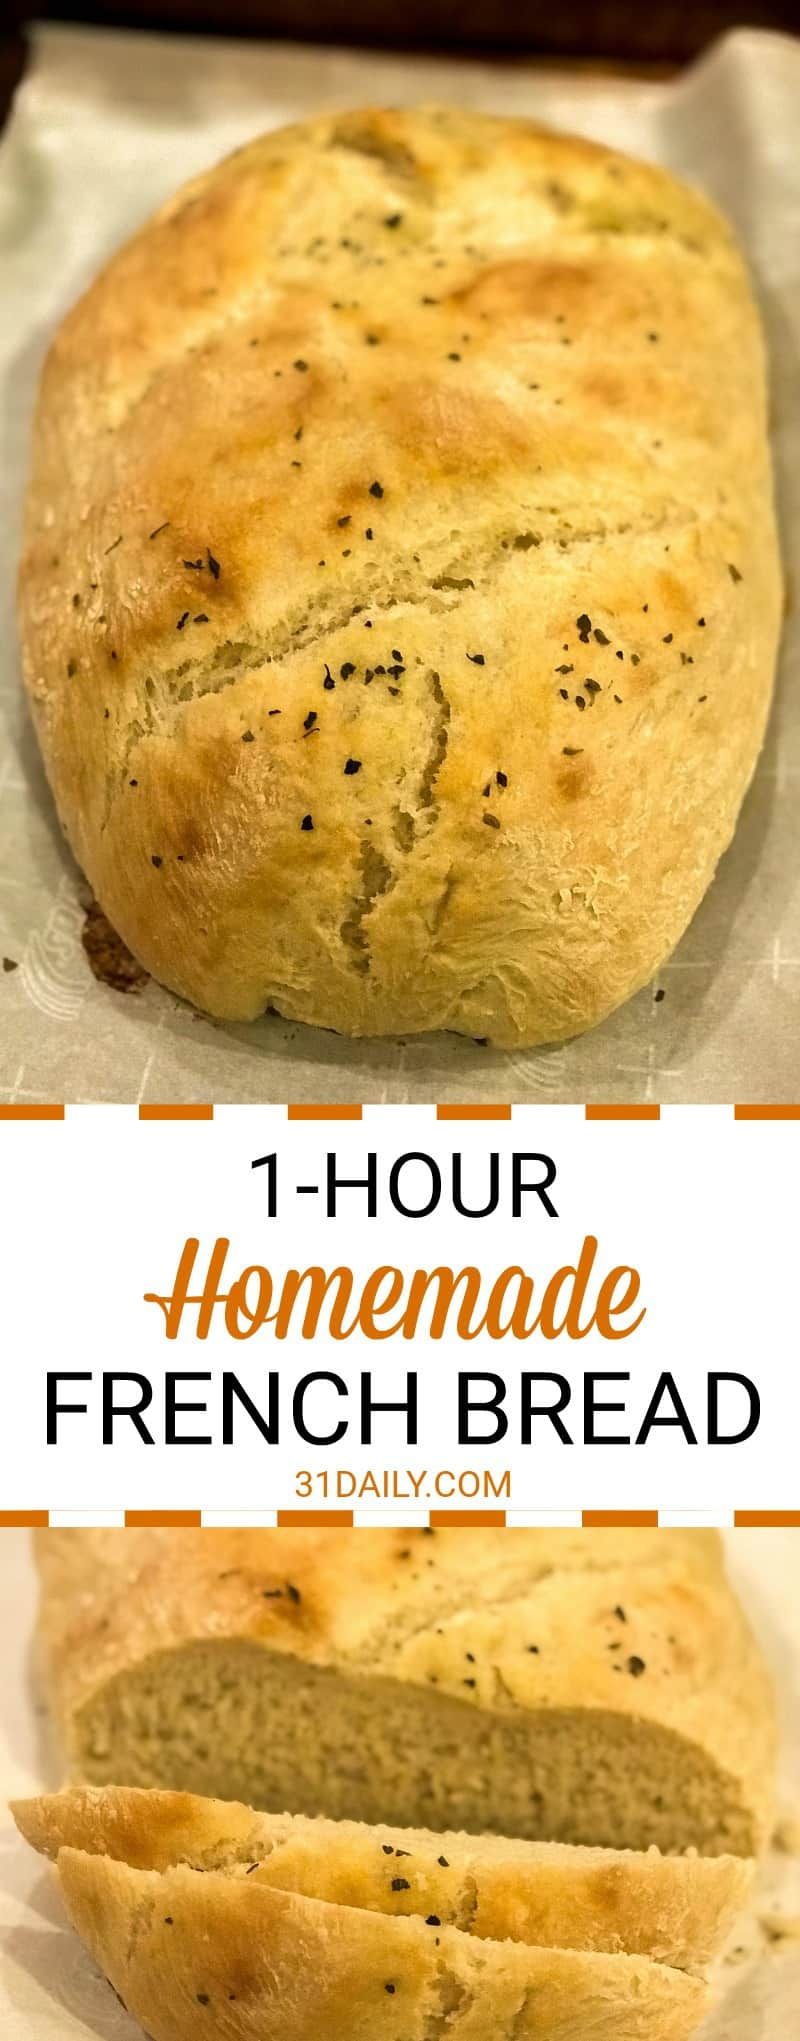 1 Hour Homemade French Bread Fresh From Your Oven | 31Daily.com